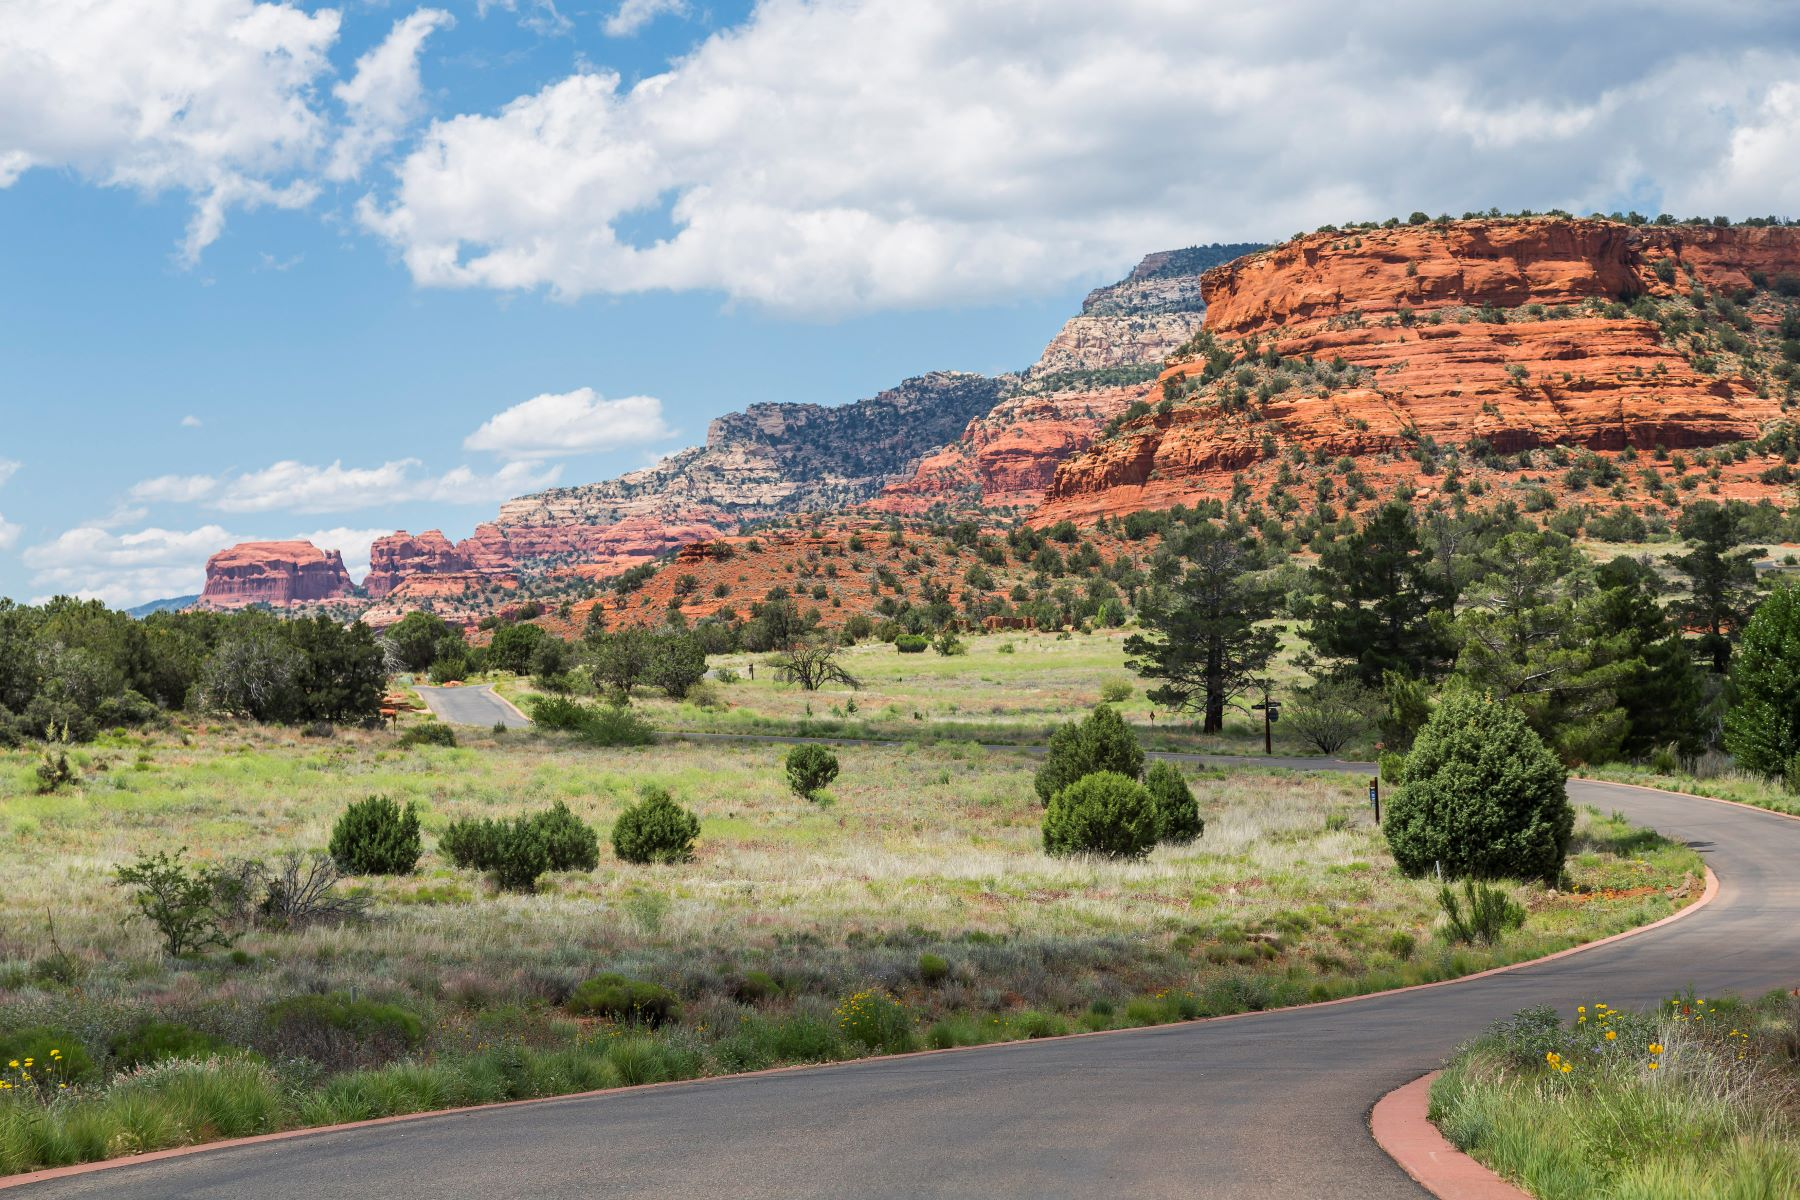 Land for Sale at Aerie Lot 28 370 Aerie Rd 28, Sedona, Arizona, 86336 United States